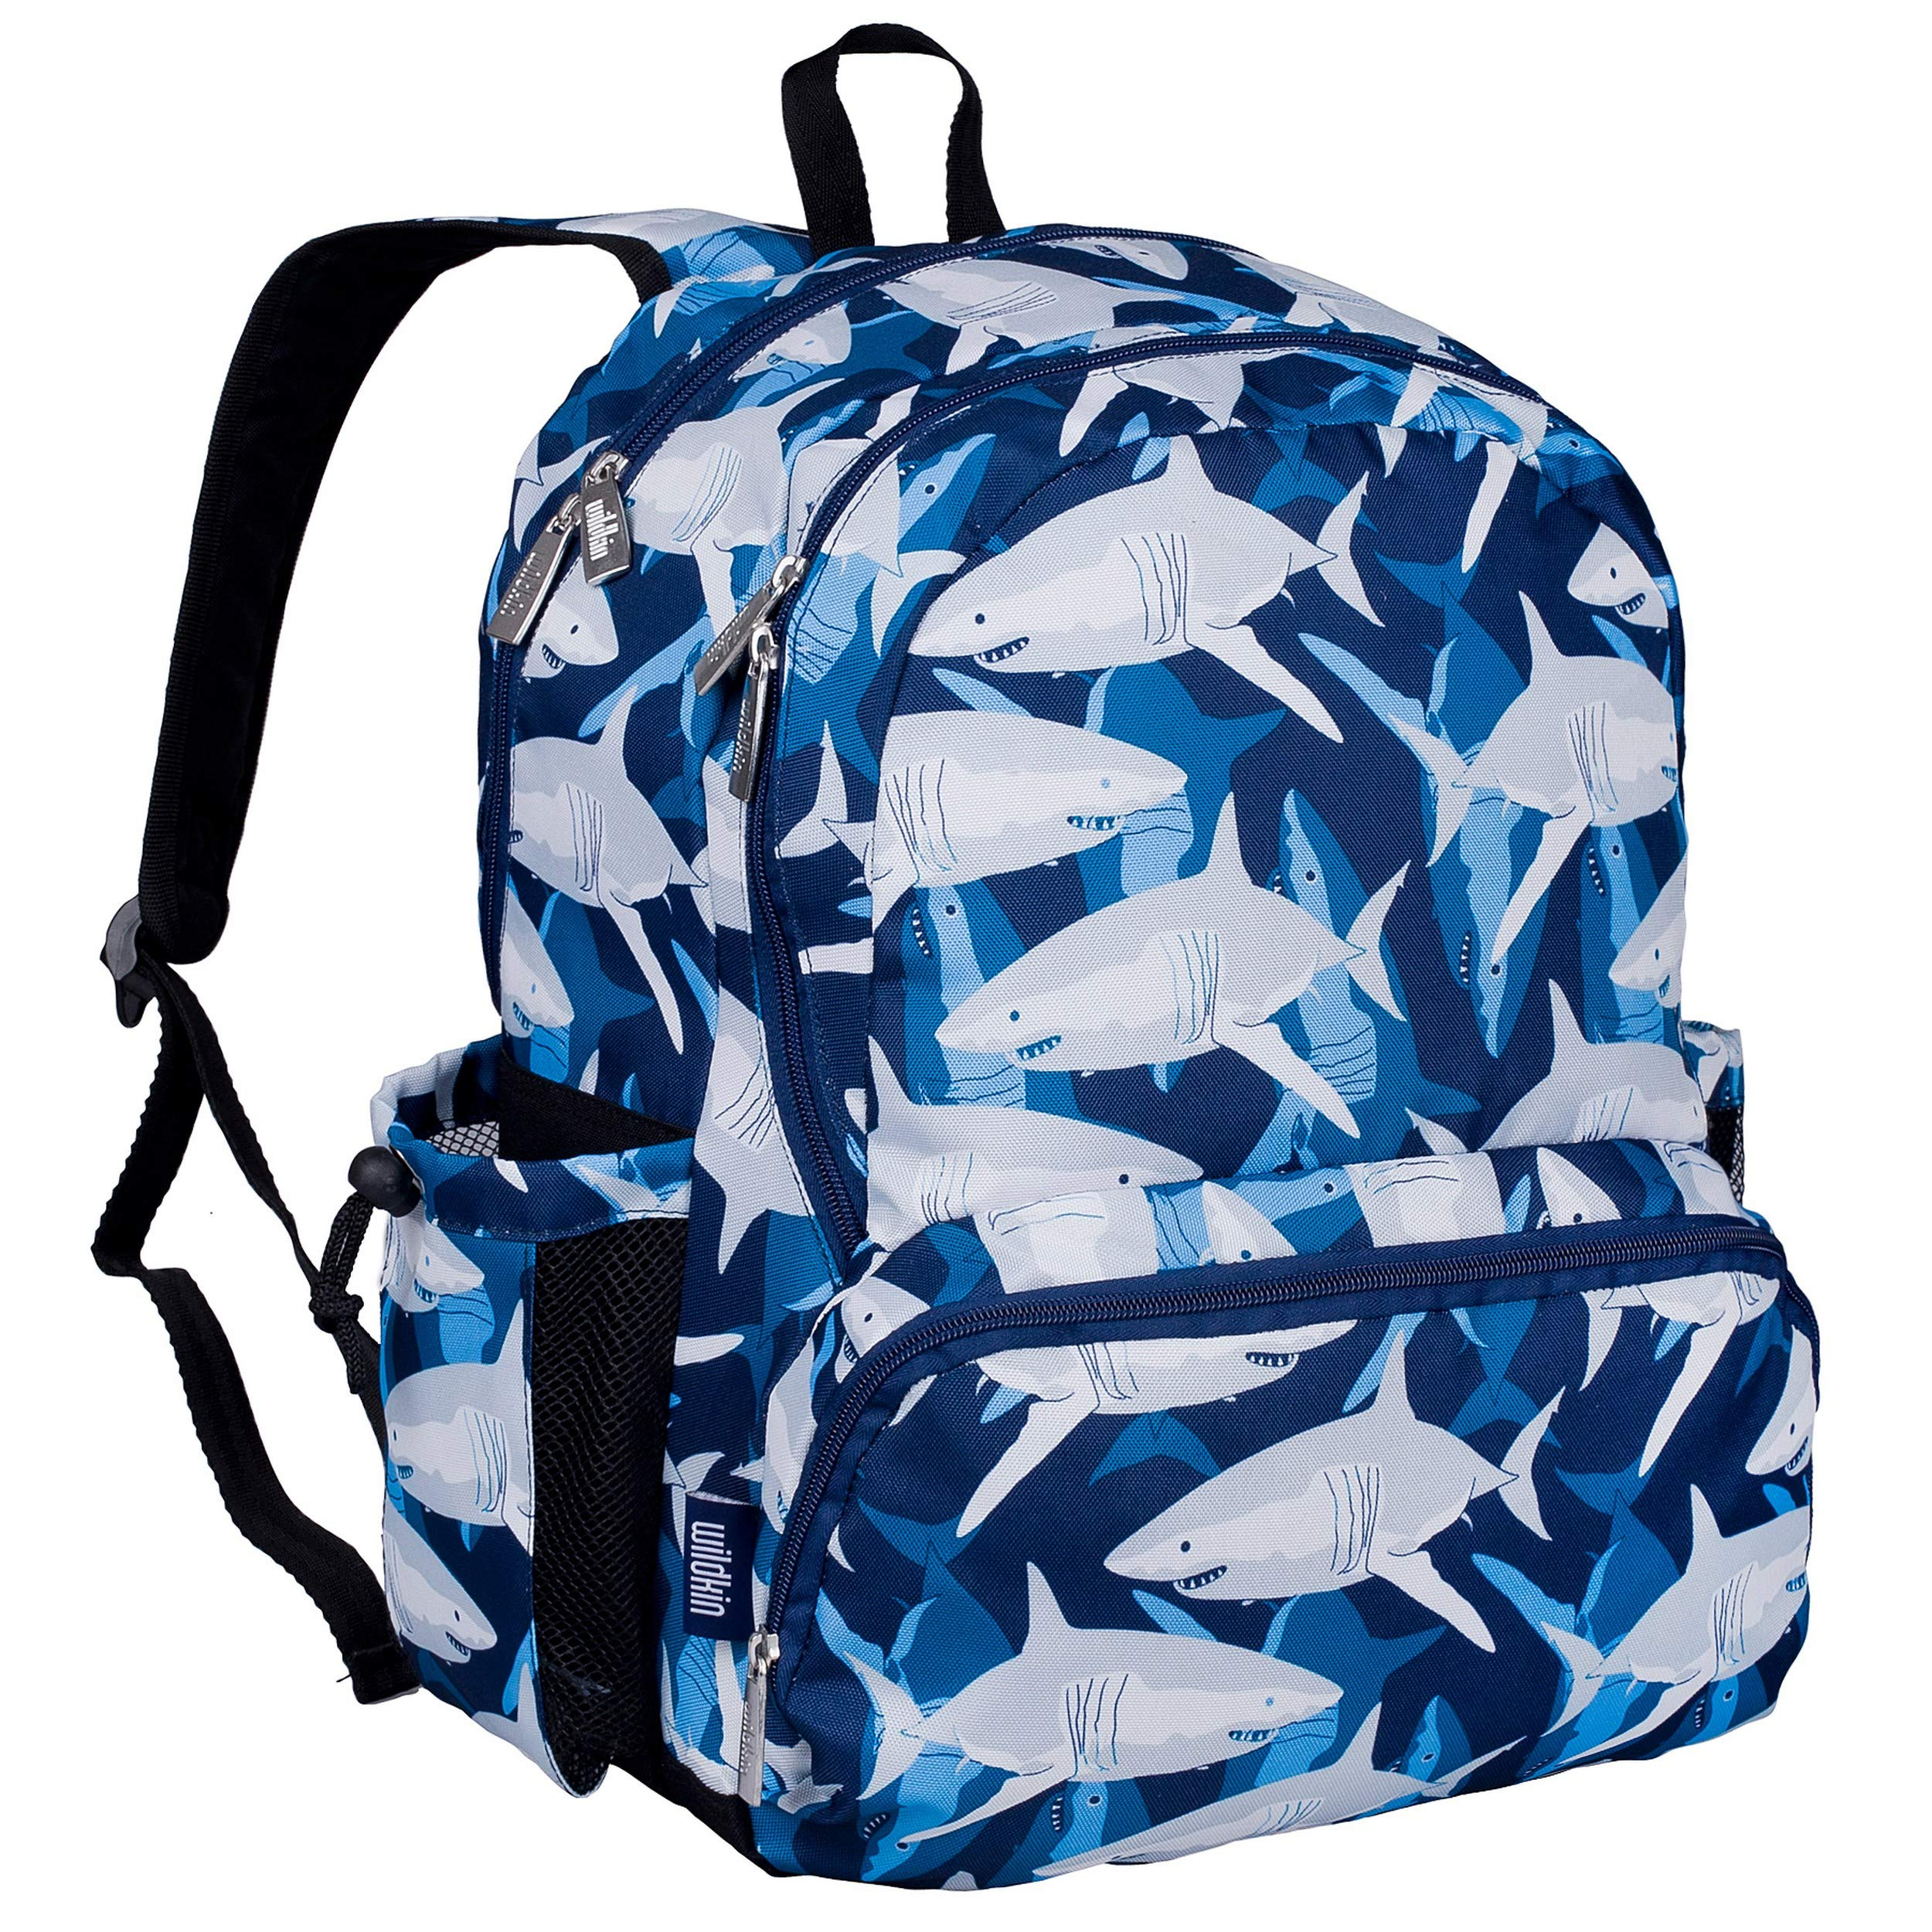 Wildkin Kids 17 Inch Backpack for Boys and Girls, Perfect Size for Middle, Junior High, and High School, Patterns Coordinate with Our Lunch Boxes and Duffel Bags by Wildkin